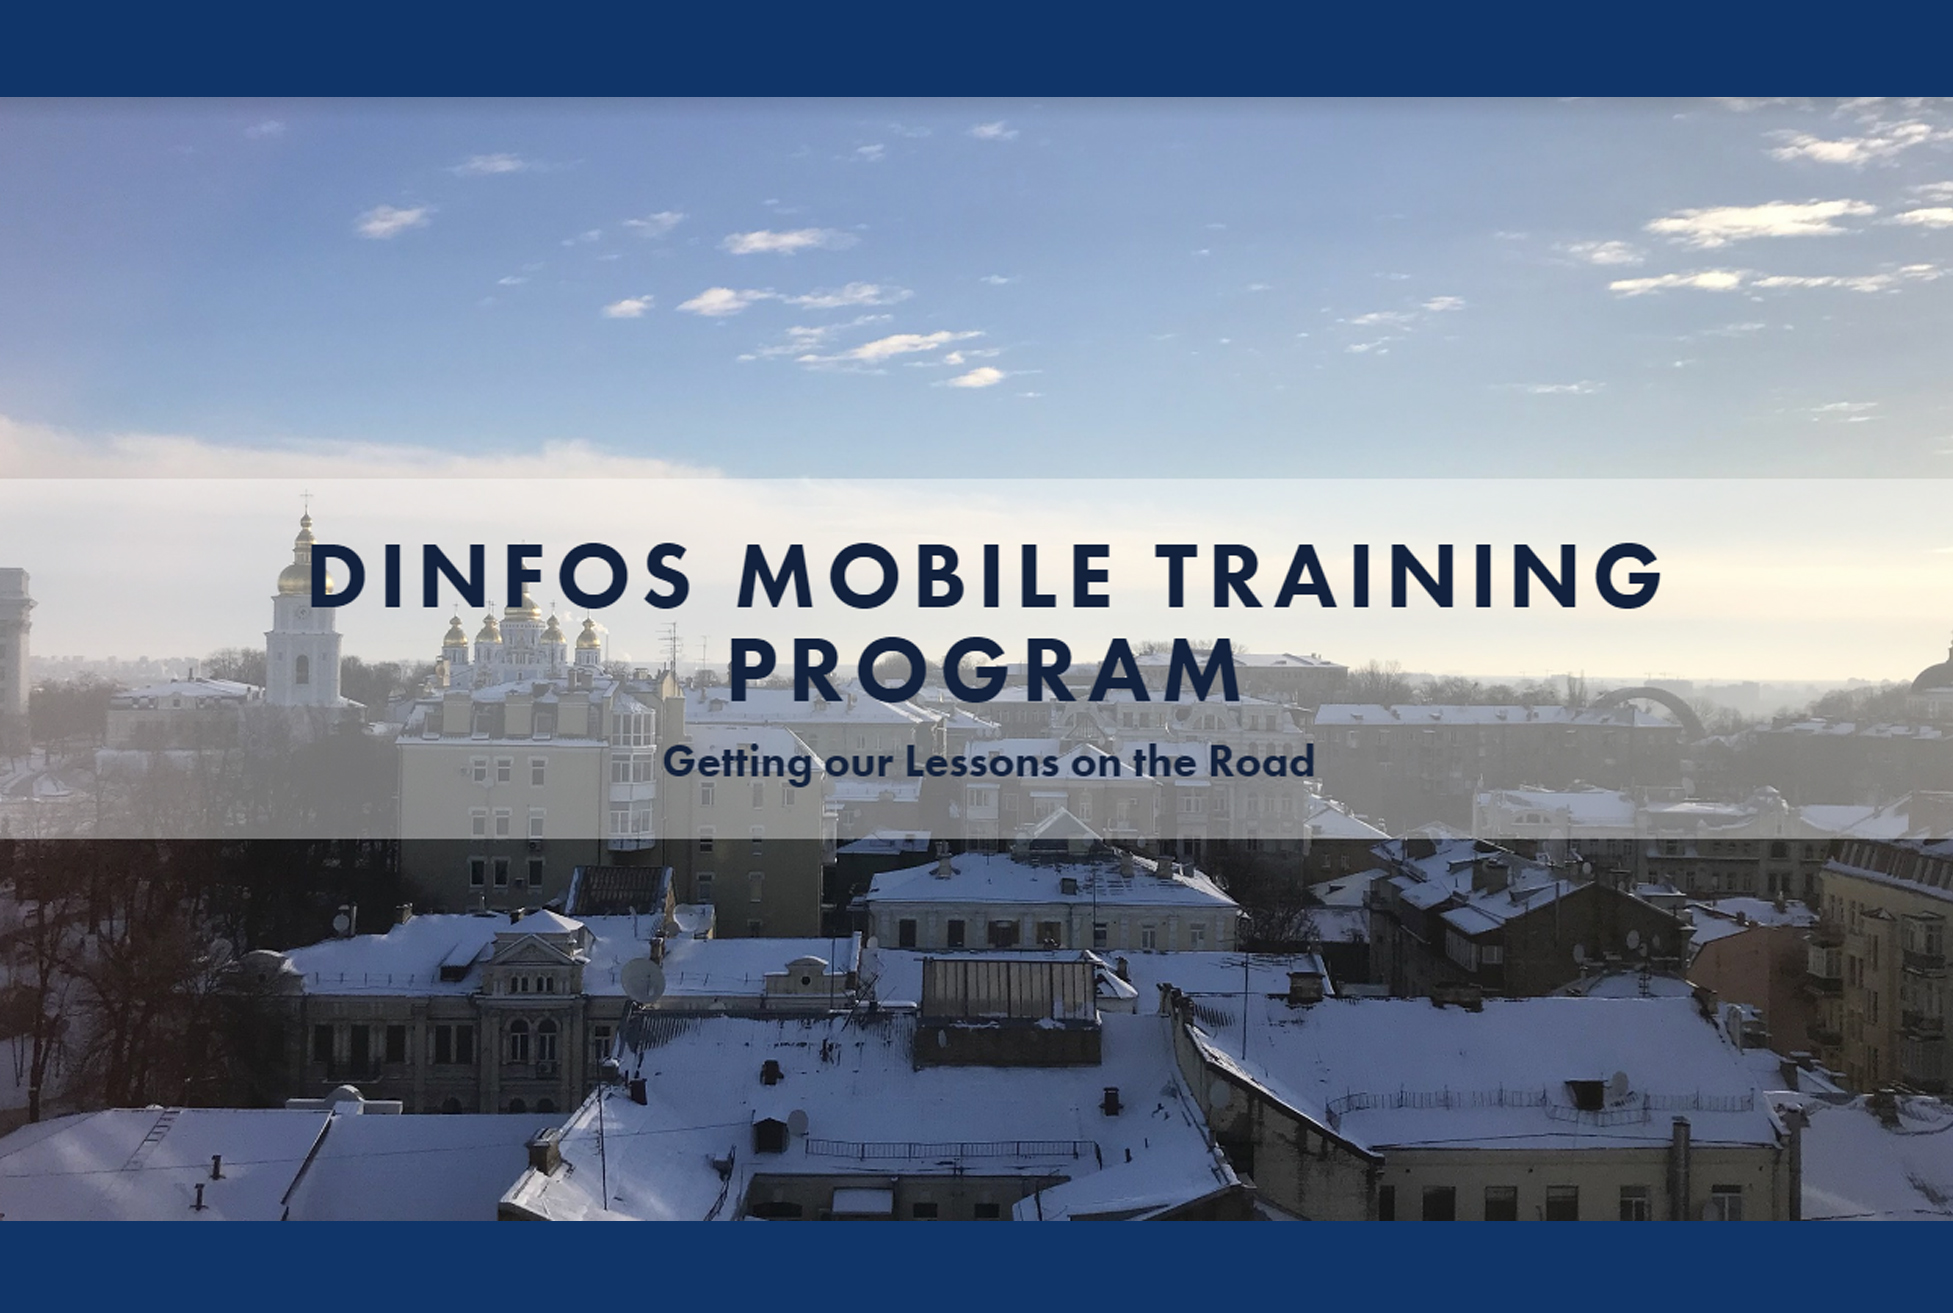 DINFOS takes learning on the road